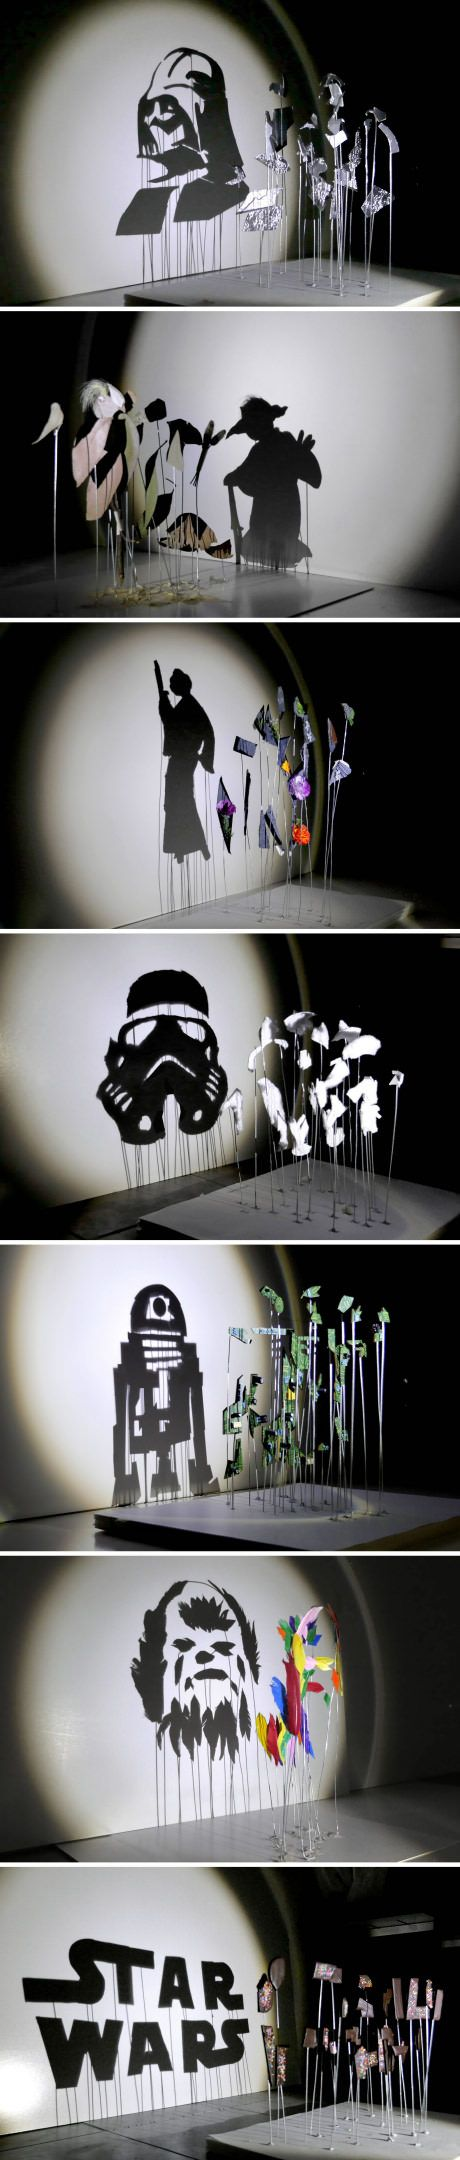 From architect and artist Red Hong Yi, observe these seven anamorphic Star Wars silhouettes, shadow art experiments created by shining a beam of light from a specific position onto different shapes arranged on wires.